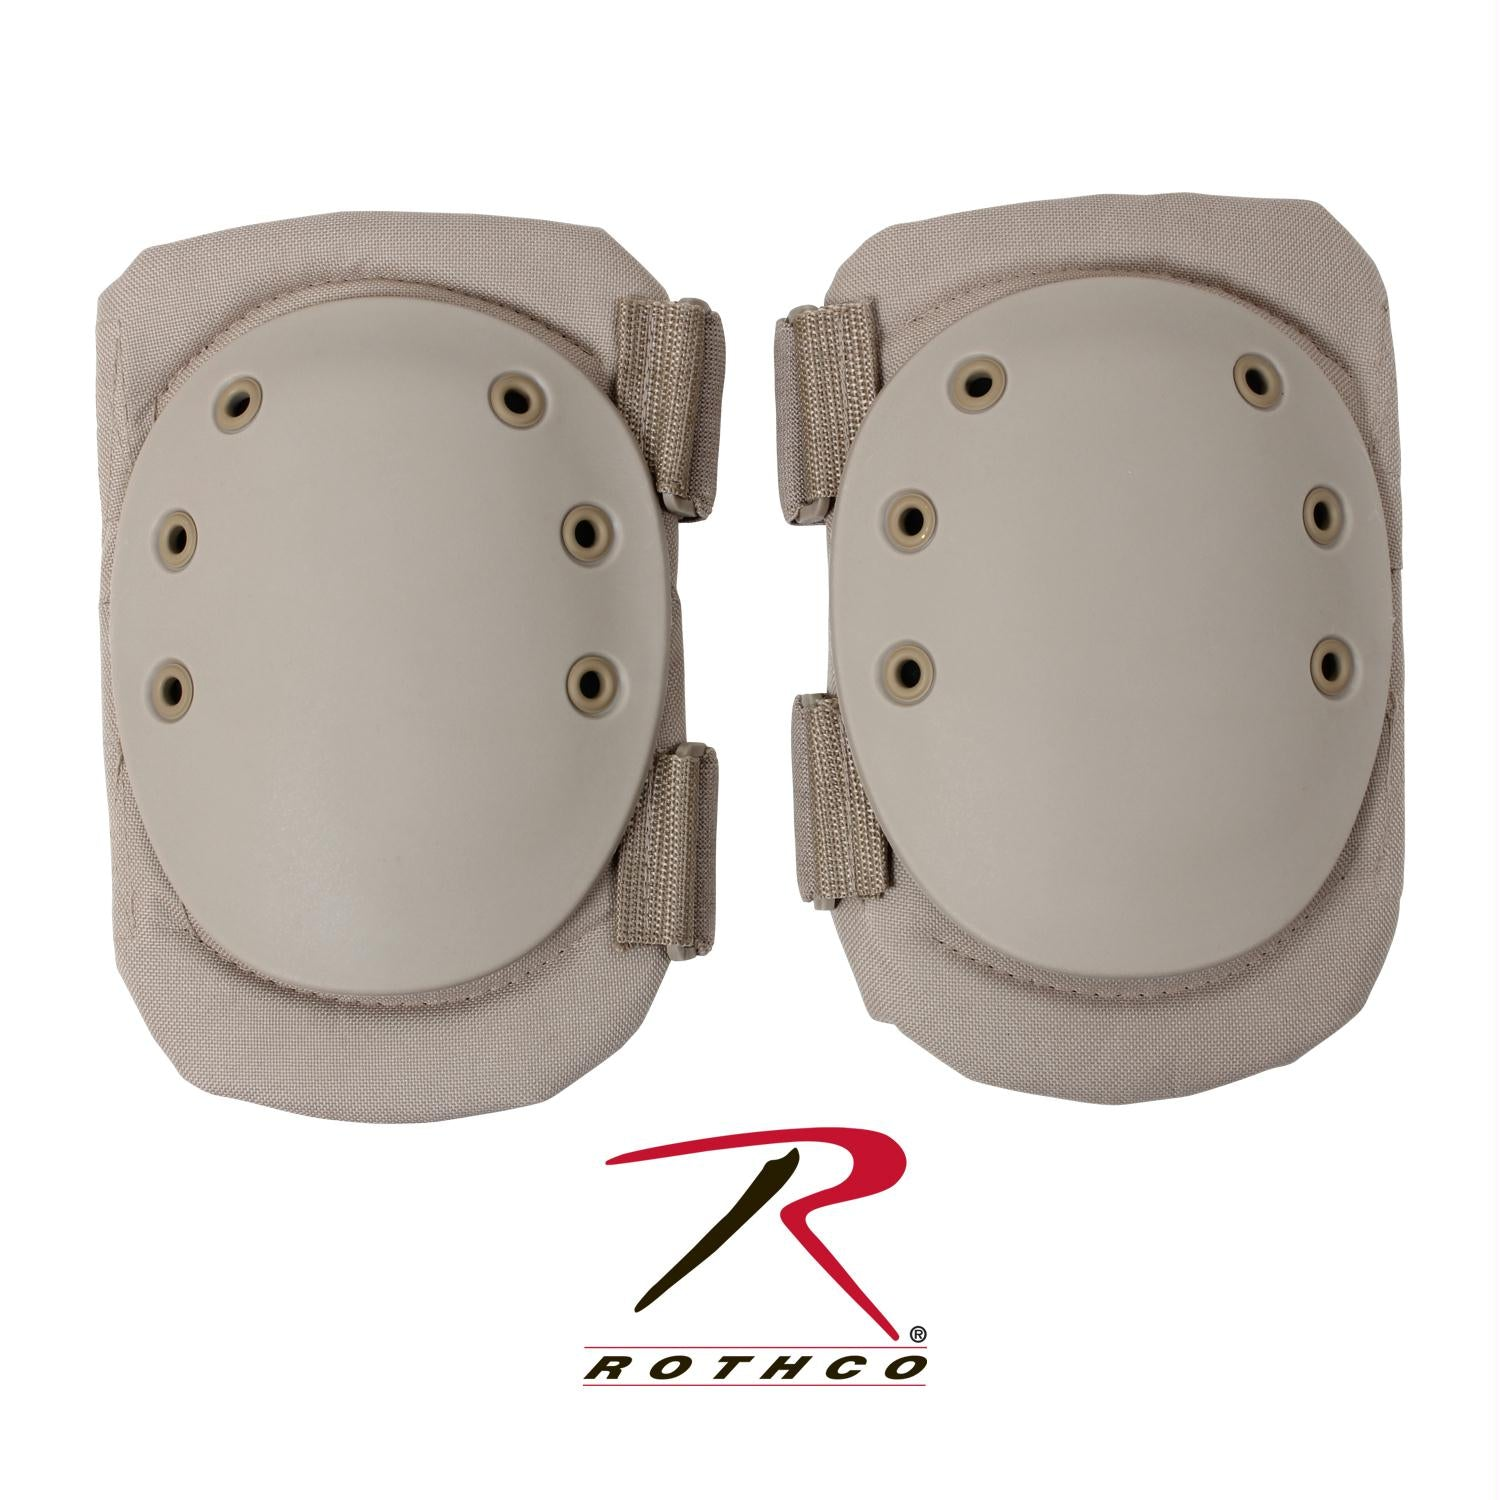 Rothco Tactical Protective Gear Knee Pads - Desert Tan